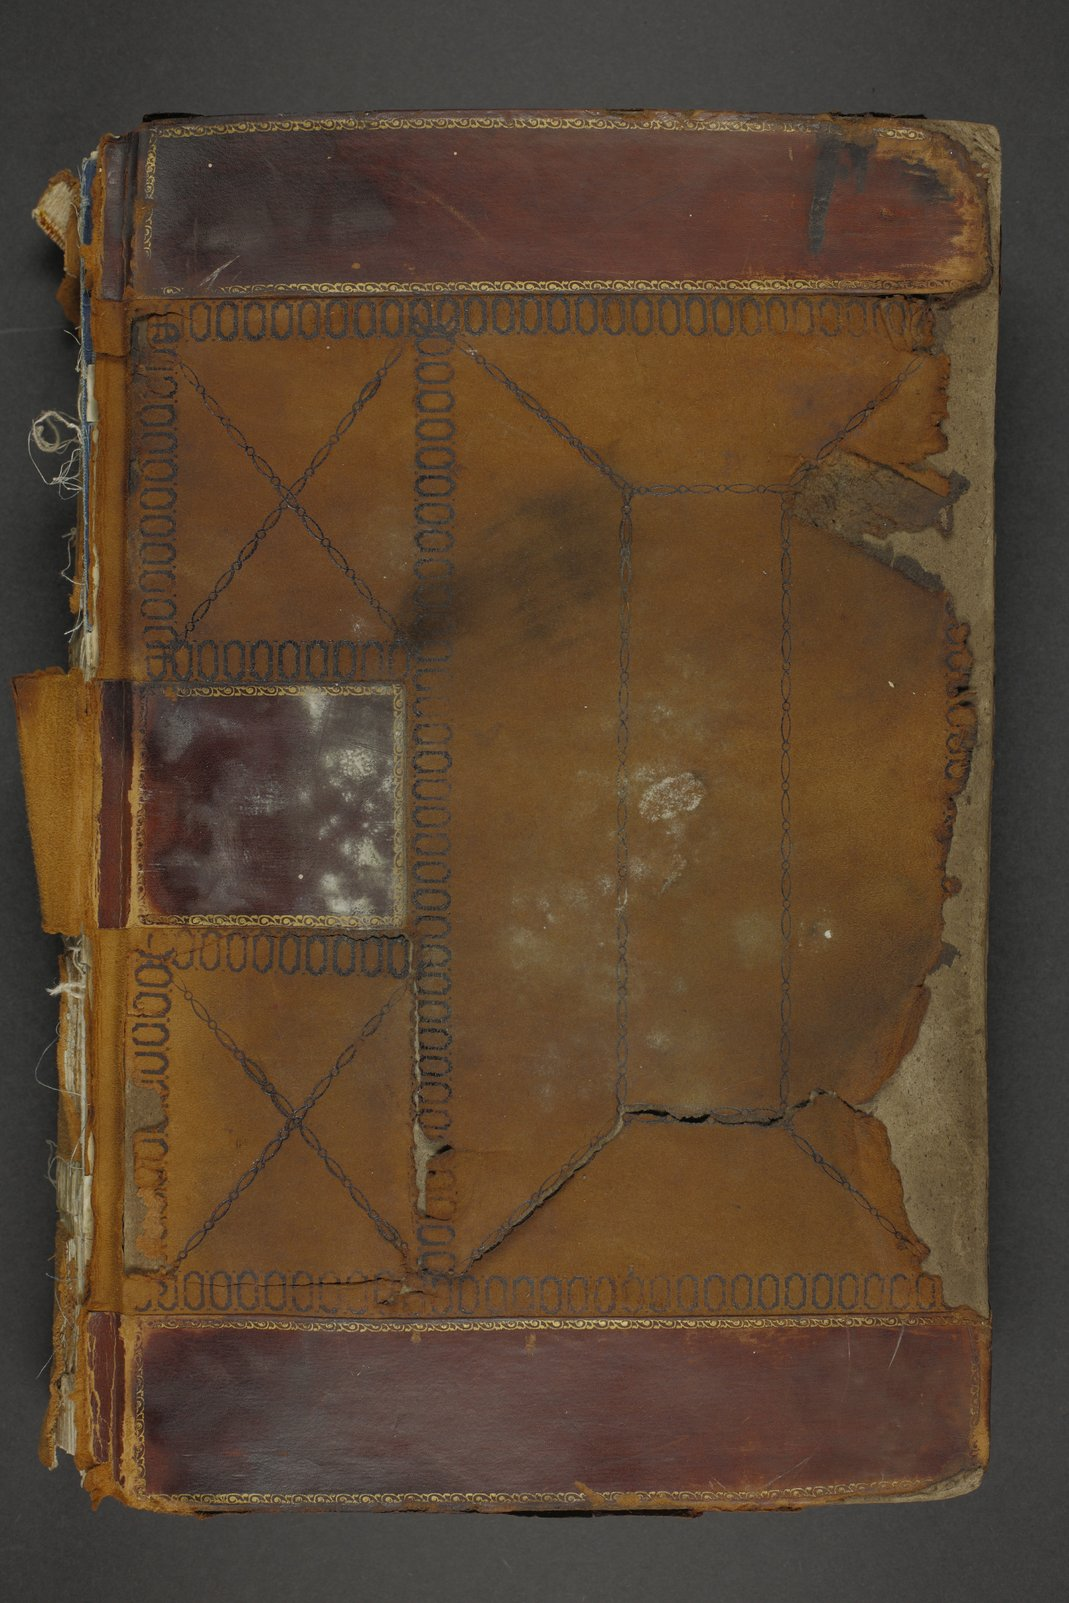 Personal histories of inmates - Volume I, 1899-1900 - Cover